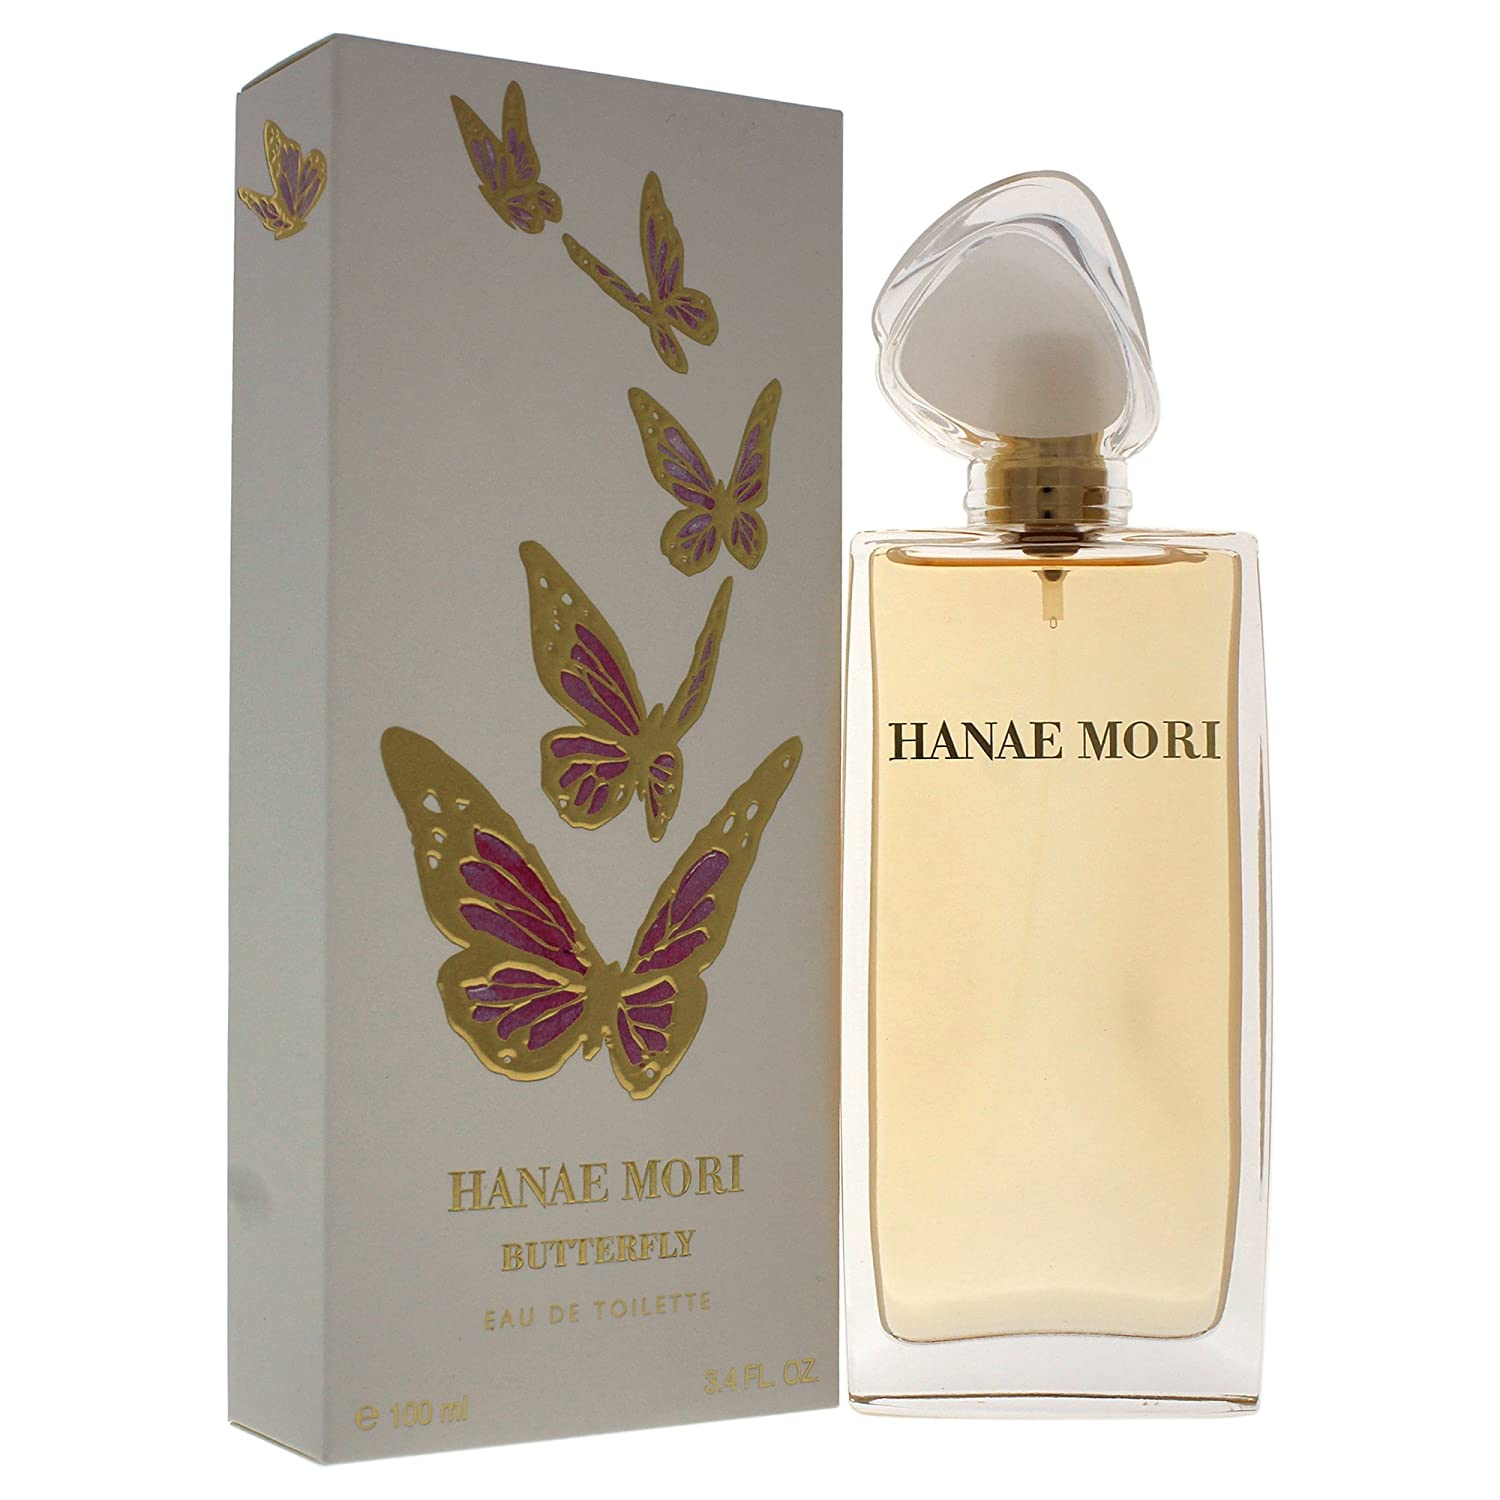 Amazon.com : Hanae Mori Butterfly Eau de Toilette, 3.4 Ounce : Beauty